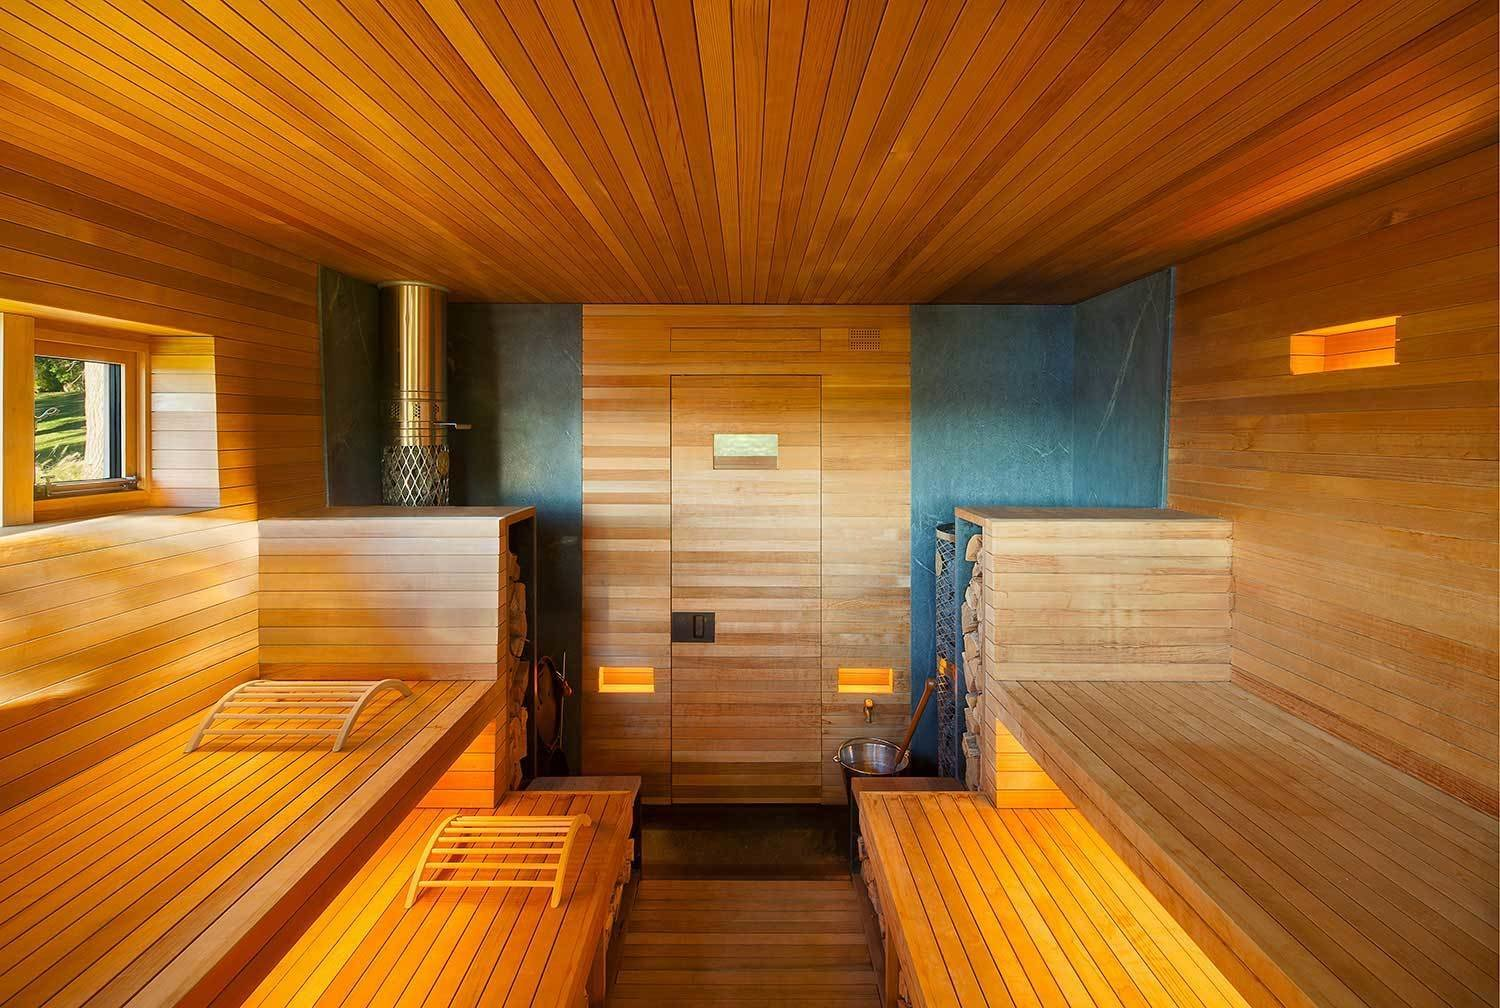 This sauna designed Andre Tchelistcheff Architects stays warm in the well-lit rolling hills of upstate New York.